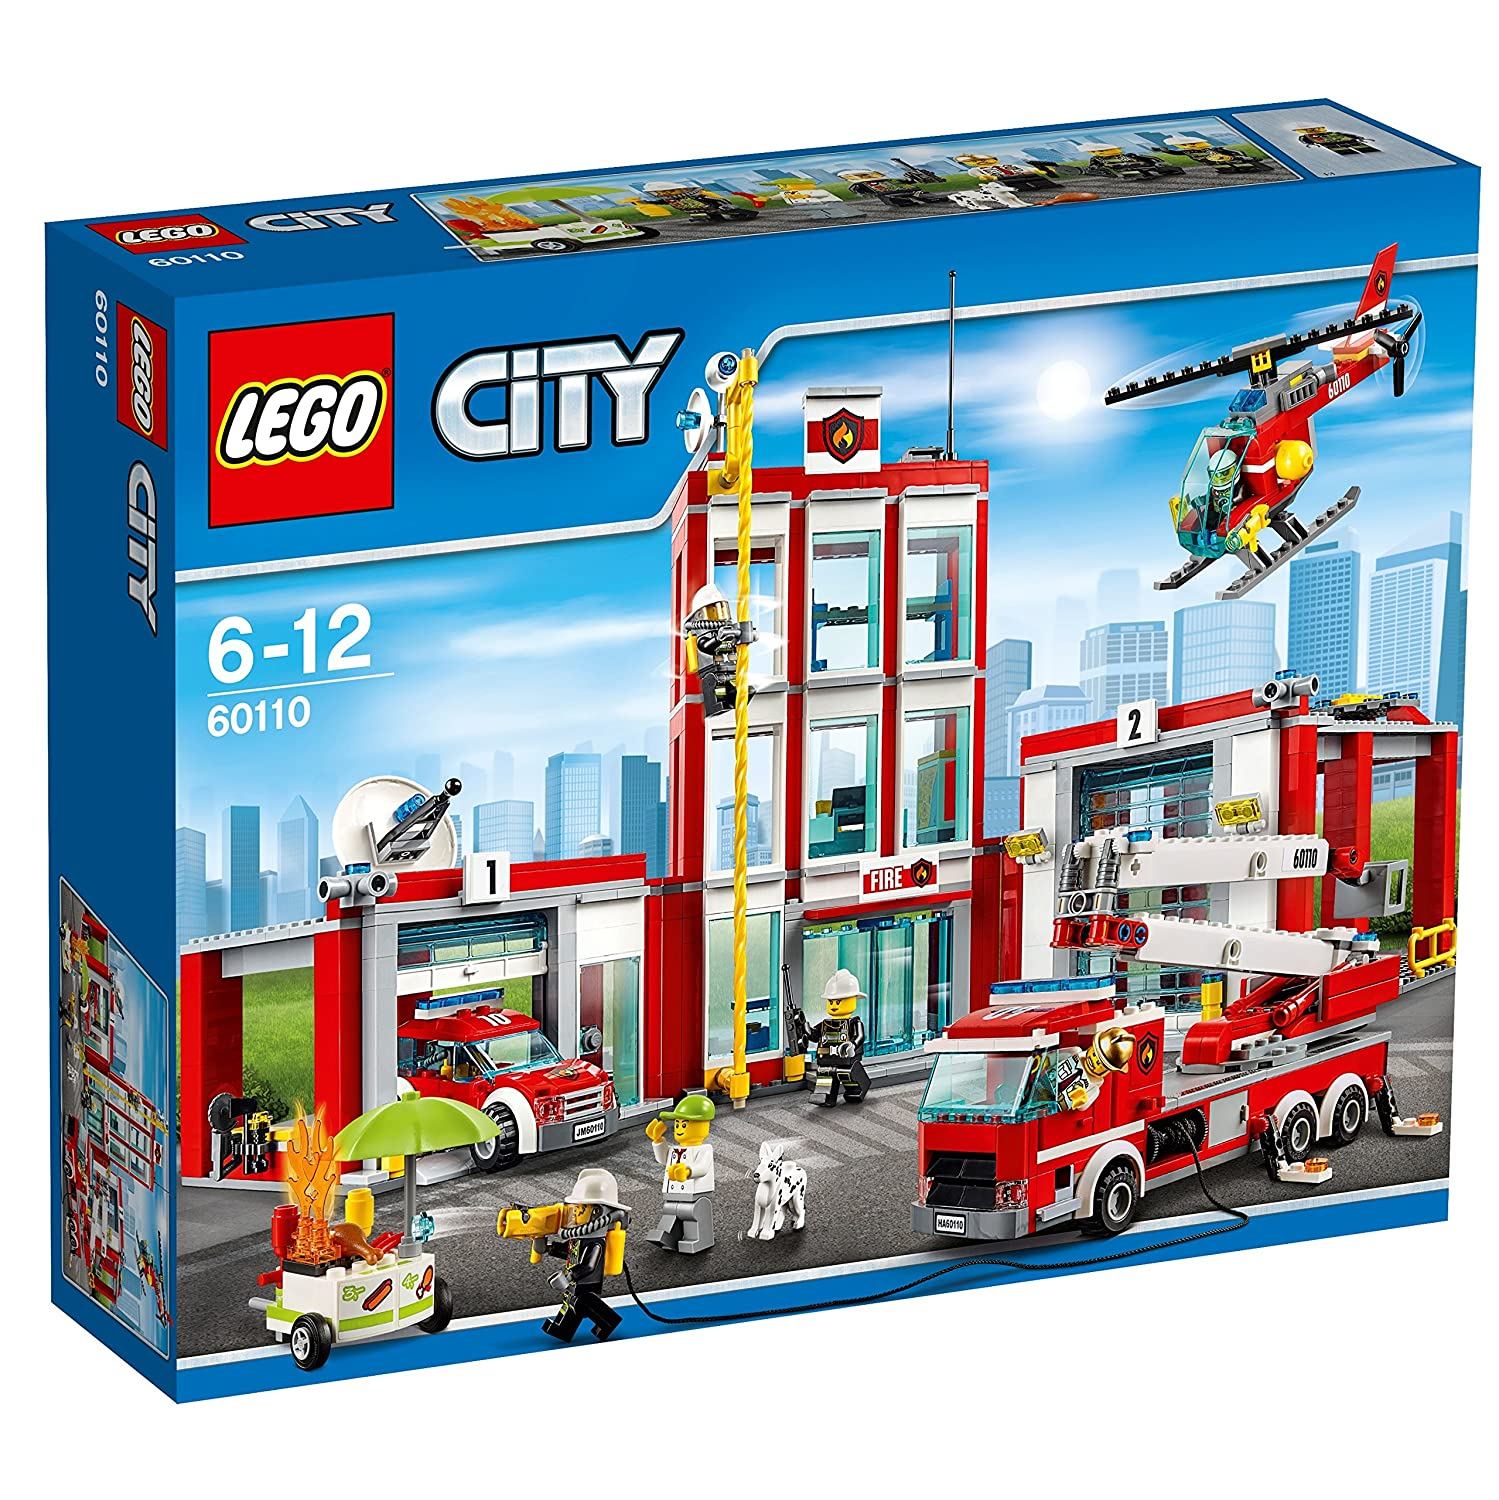 Top 9 Best LEGO Fire Station Sets Reviews in 2020 3